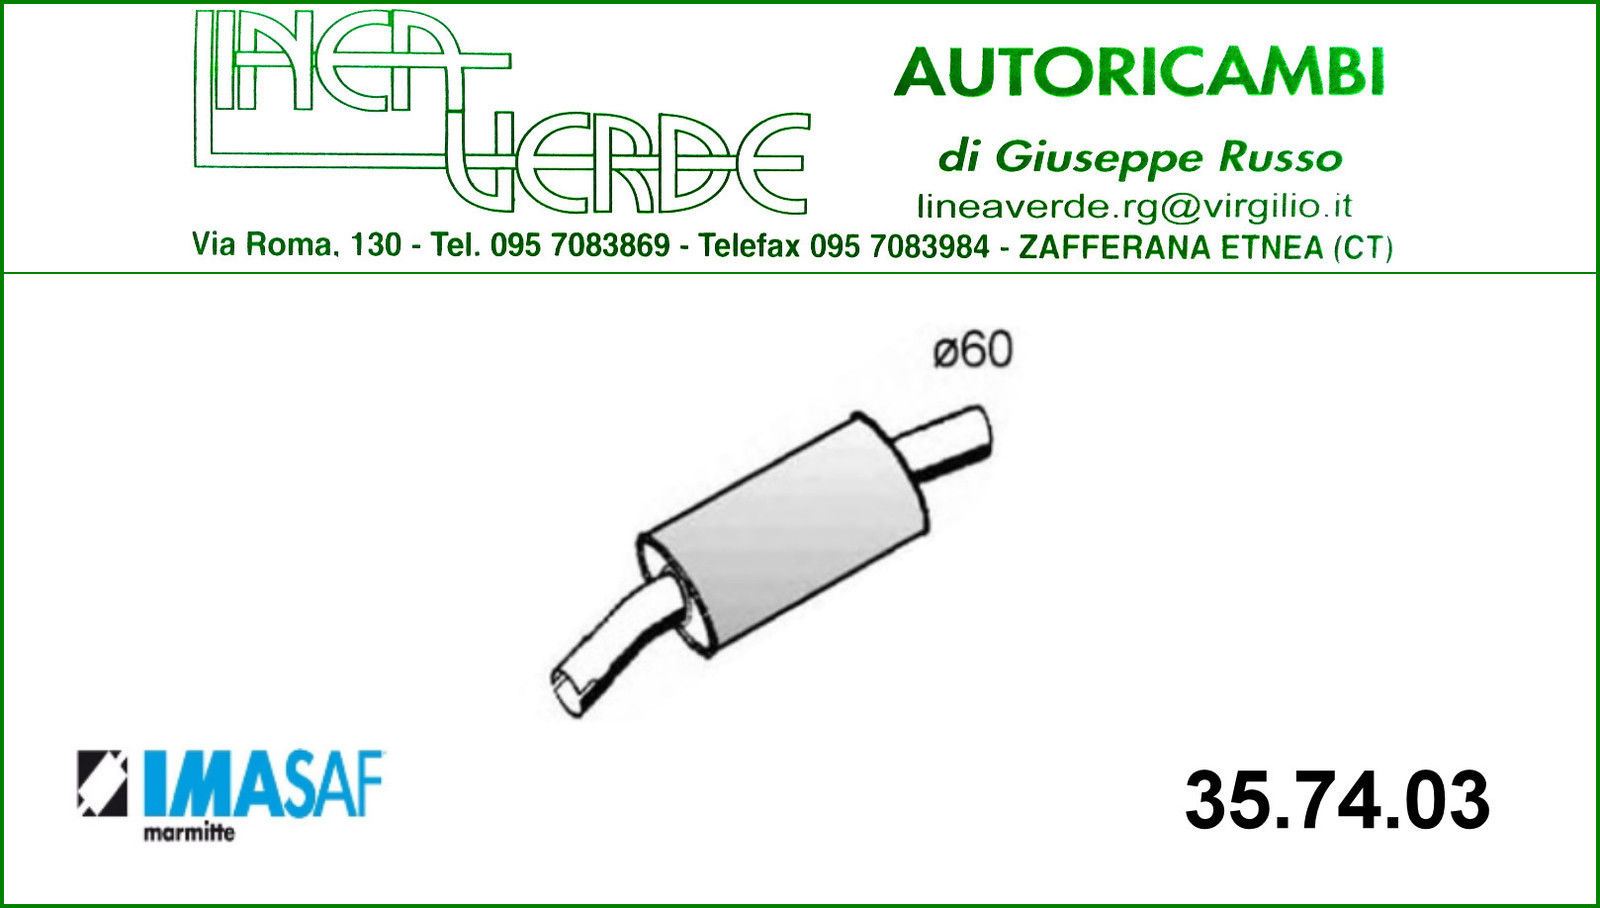 SILENCER FRONT IMASAF FOR 7579129 - 1717HS FIAT DUCATO - CITROËN C25